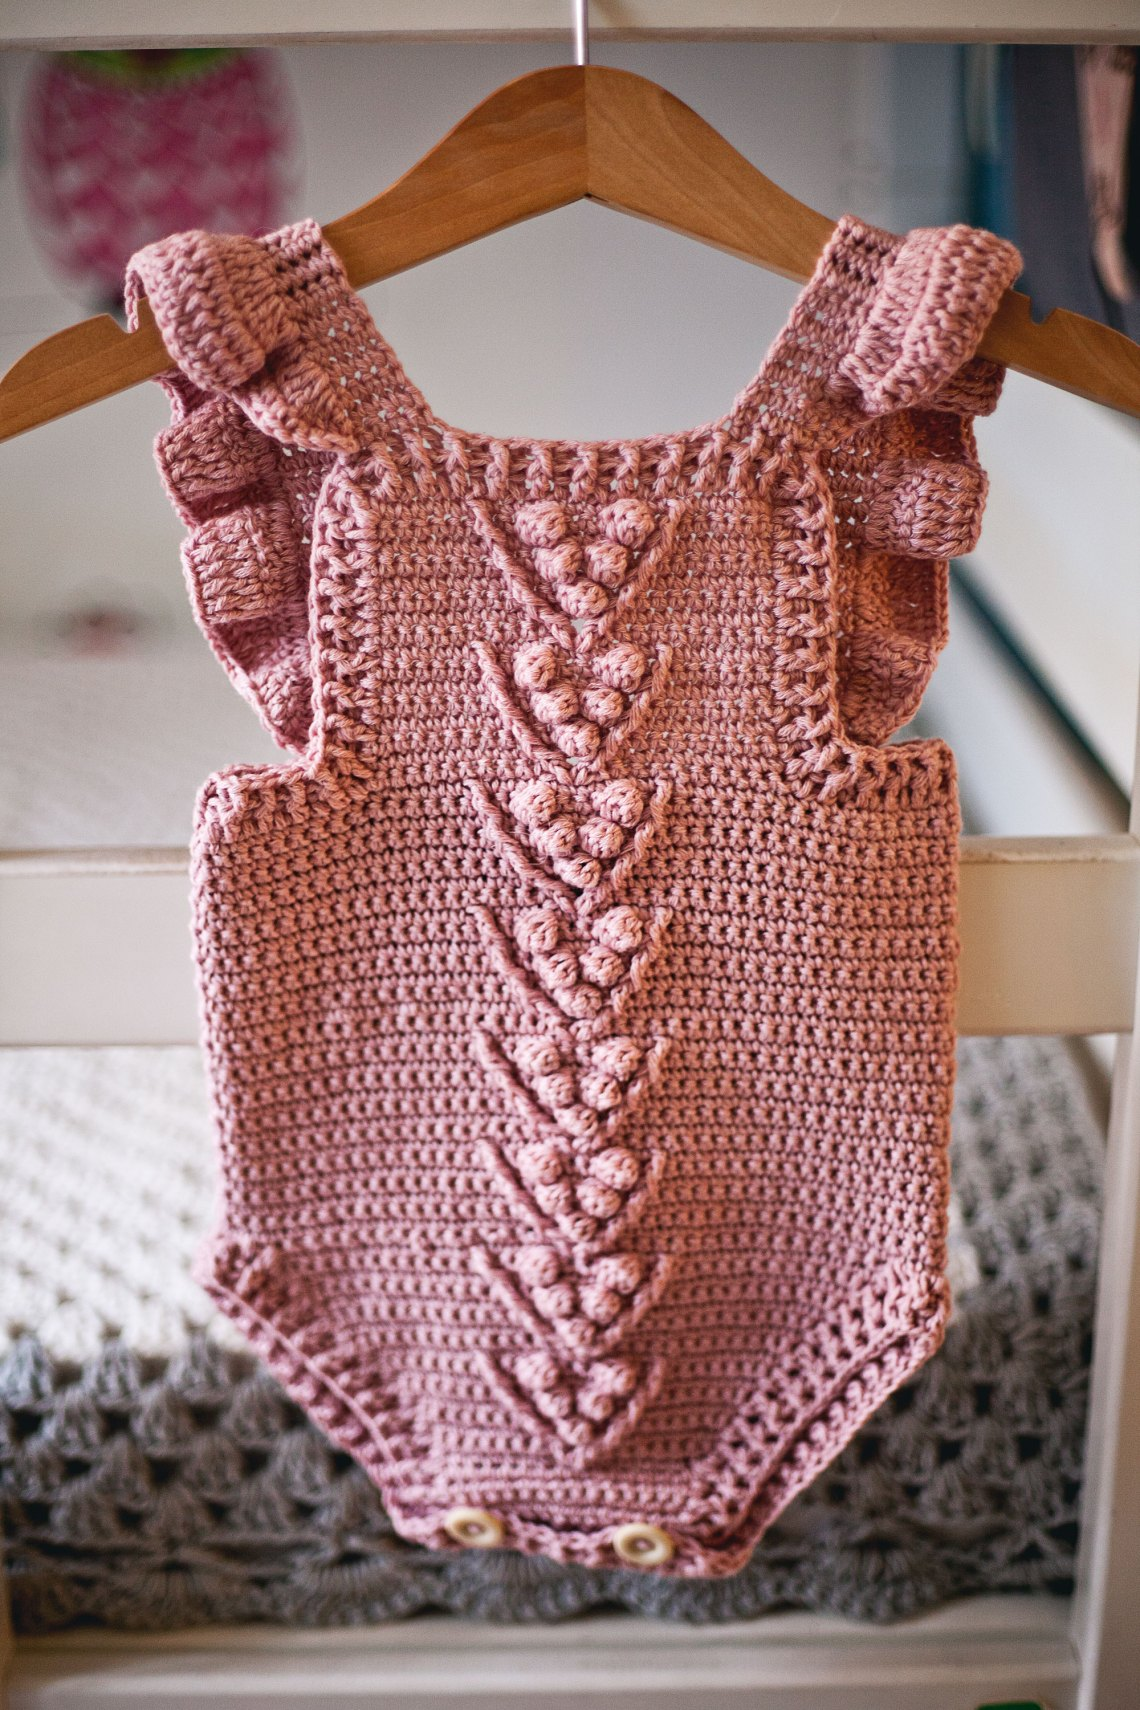 Berry Romper, crochet pattern by Mon Petit Violon